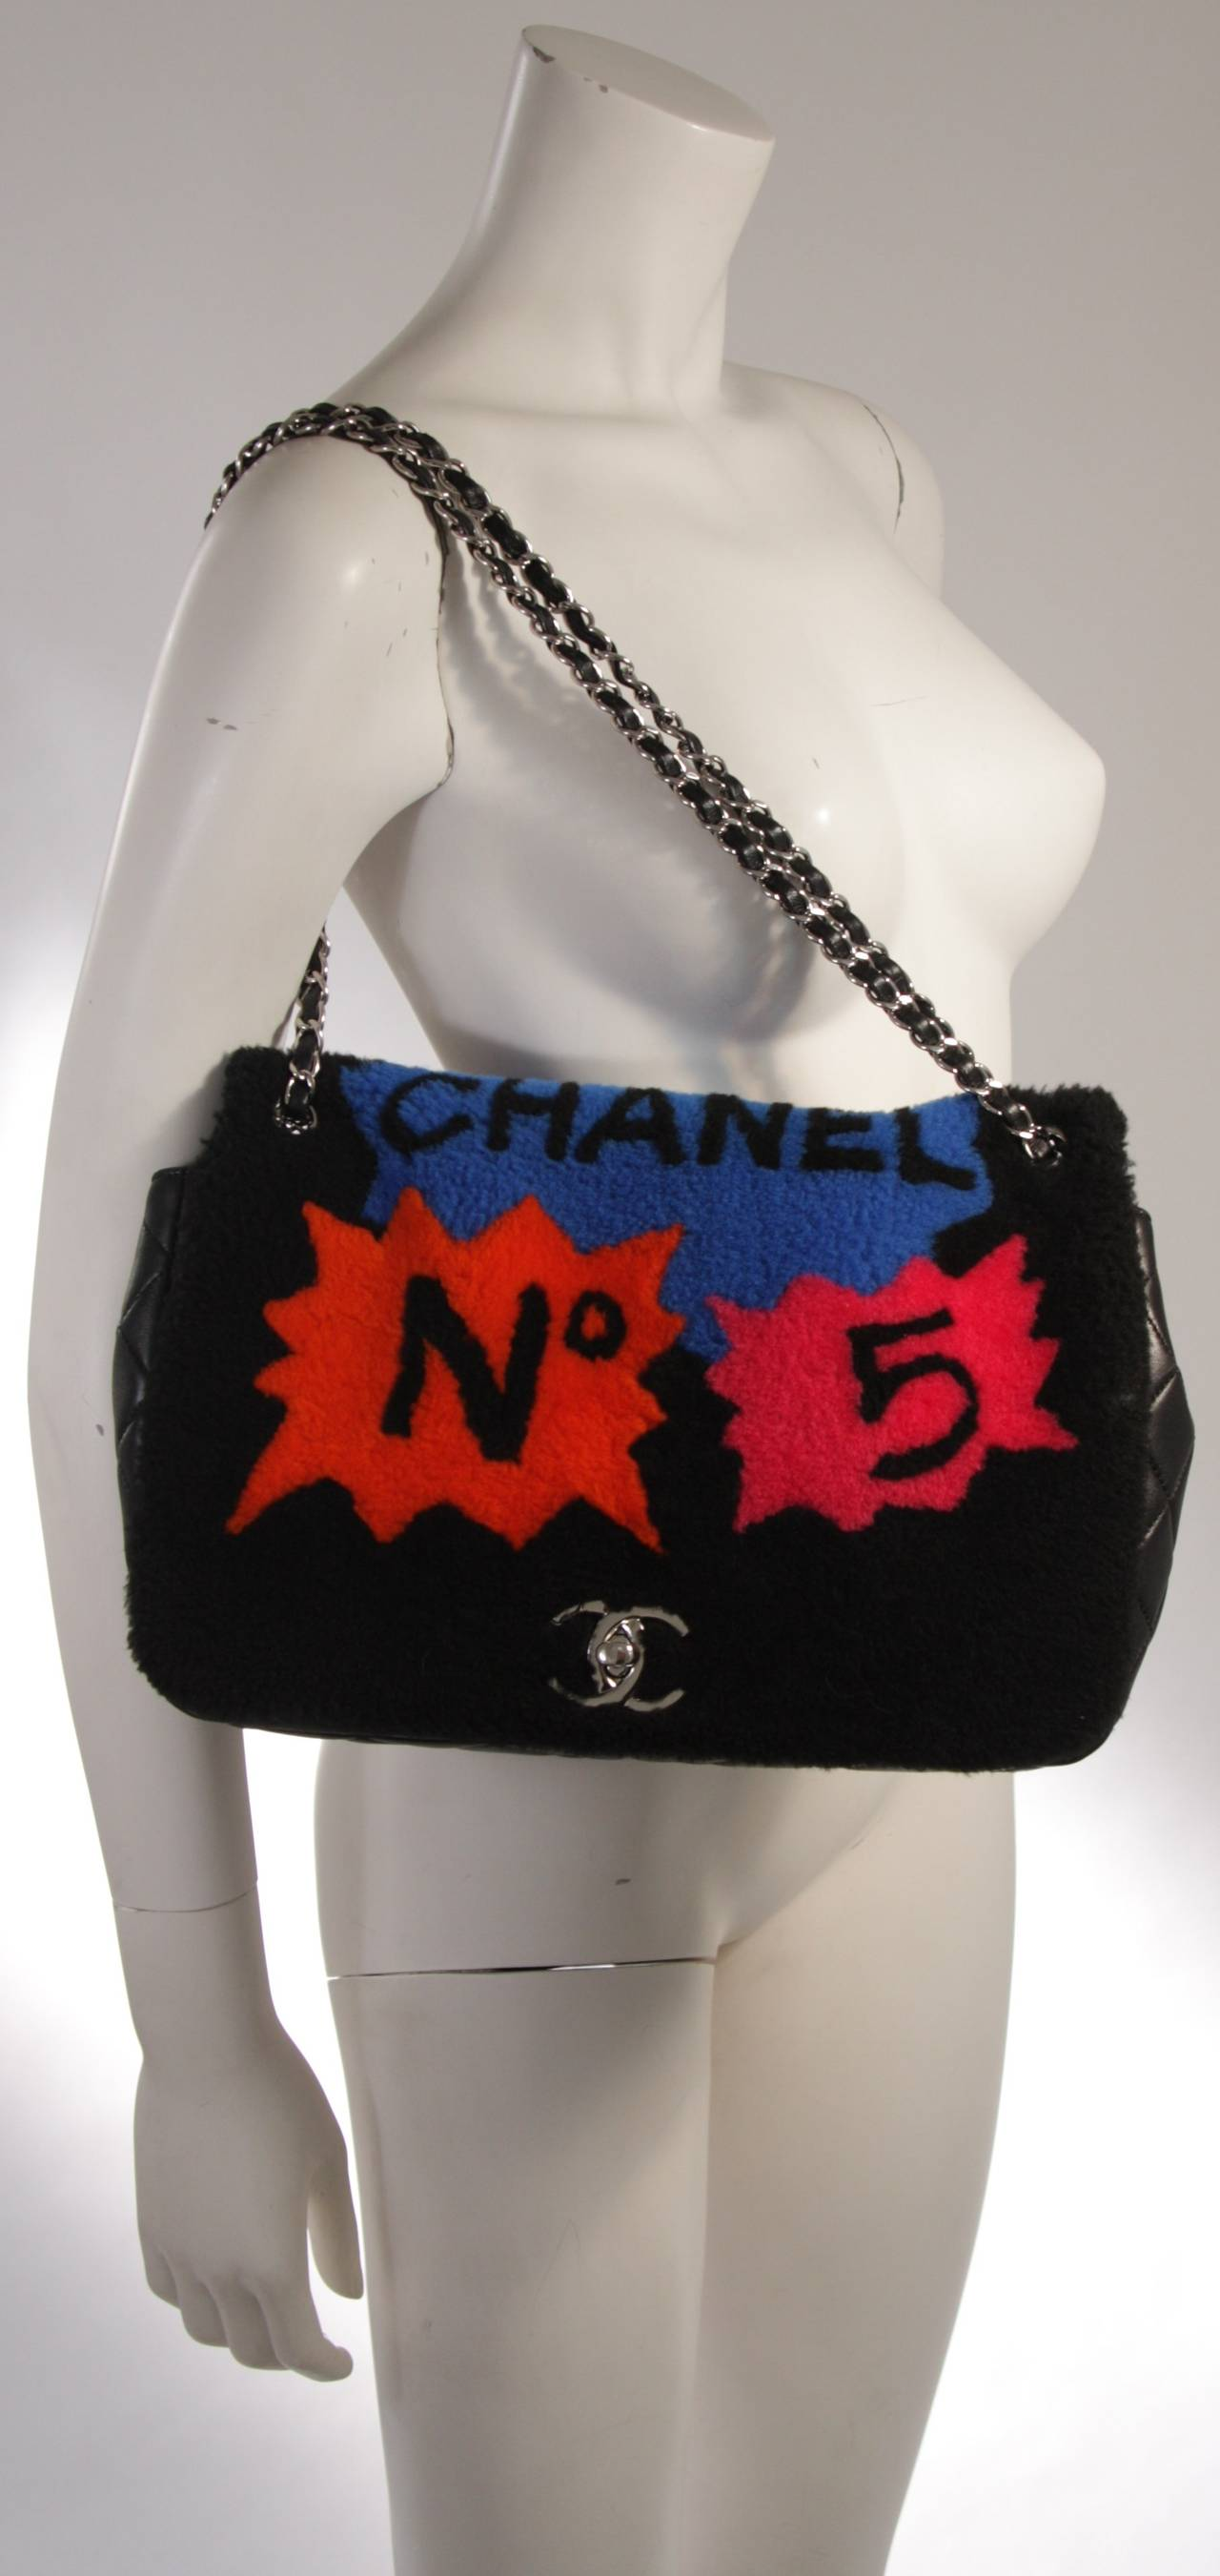 Chanel Shearling Art Pop Large Purse with Quilted Lambskin Fall 2014 9